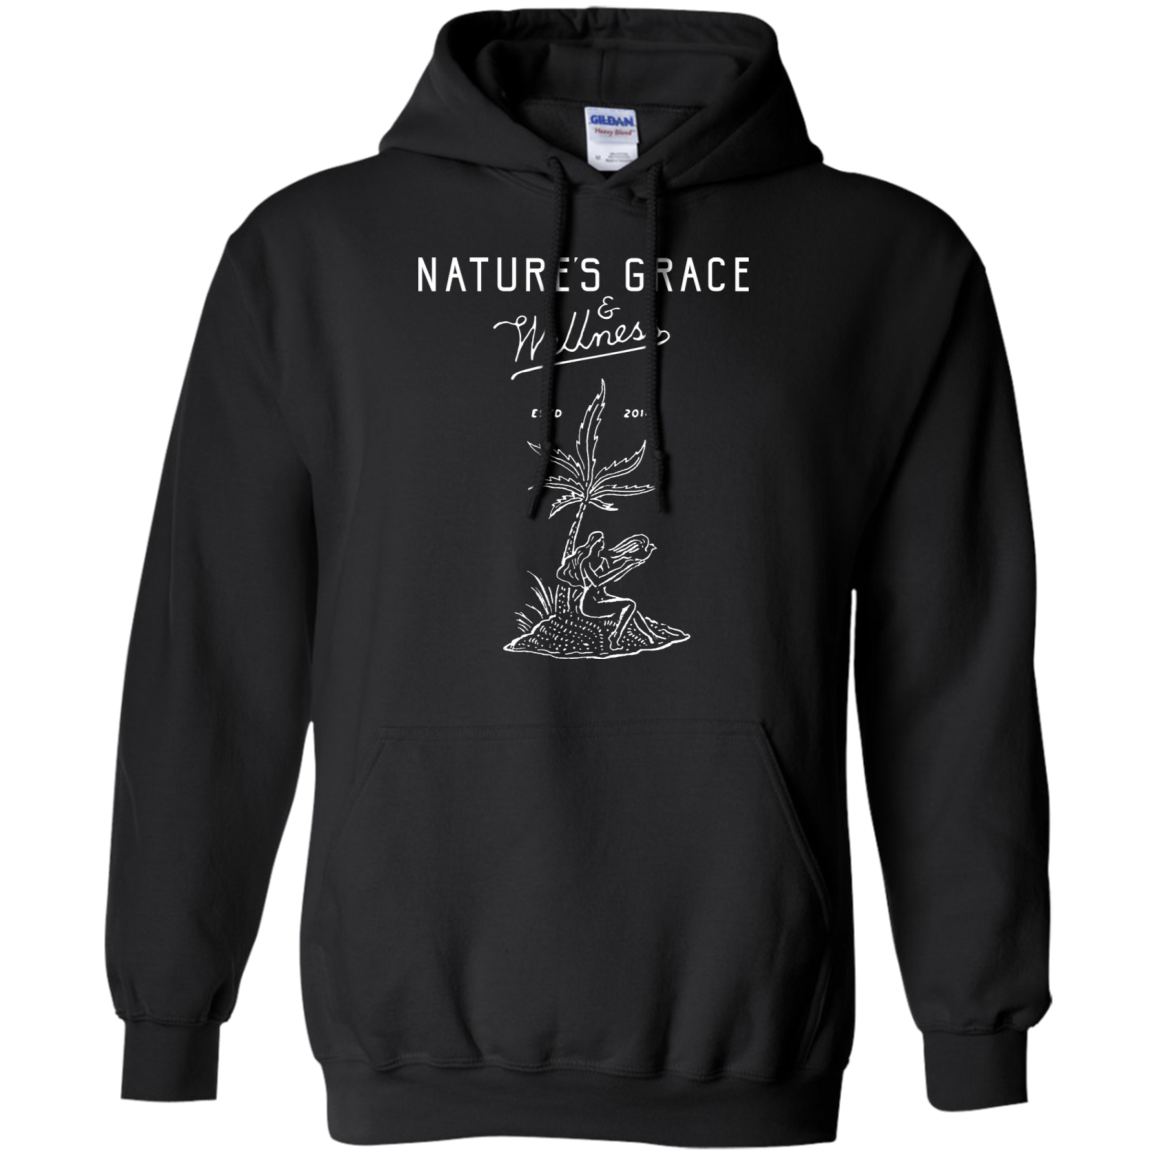 natures-grace-wellness-island-hoodie_image